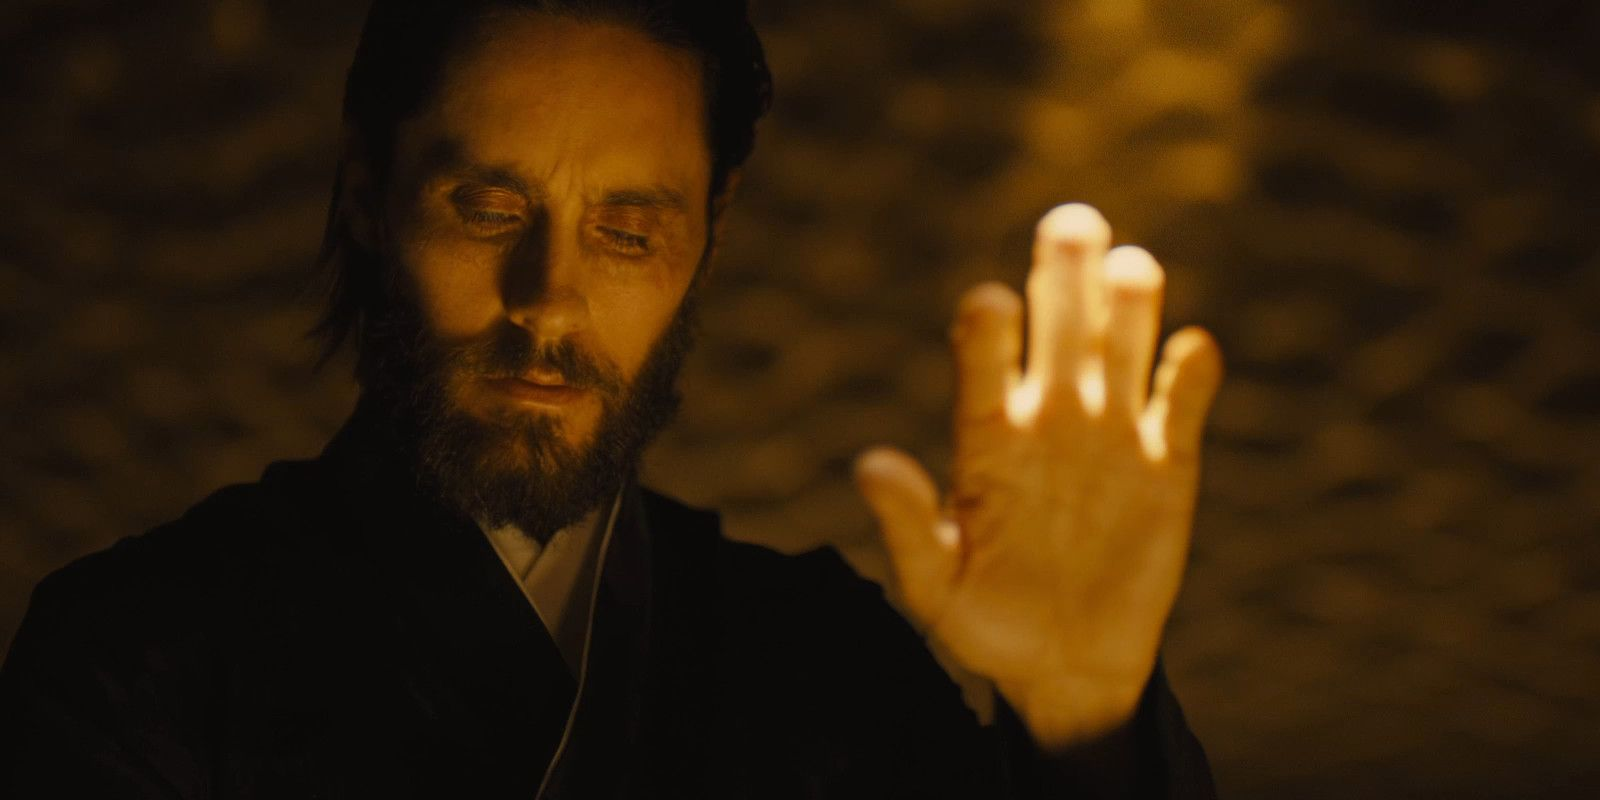 Jared Leto Wants to Play Blade Runner 2049 Character Again